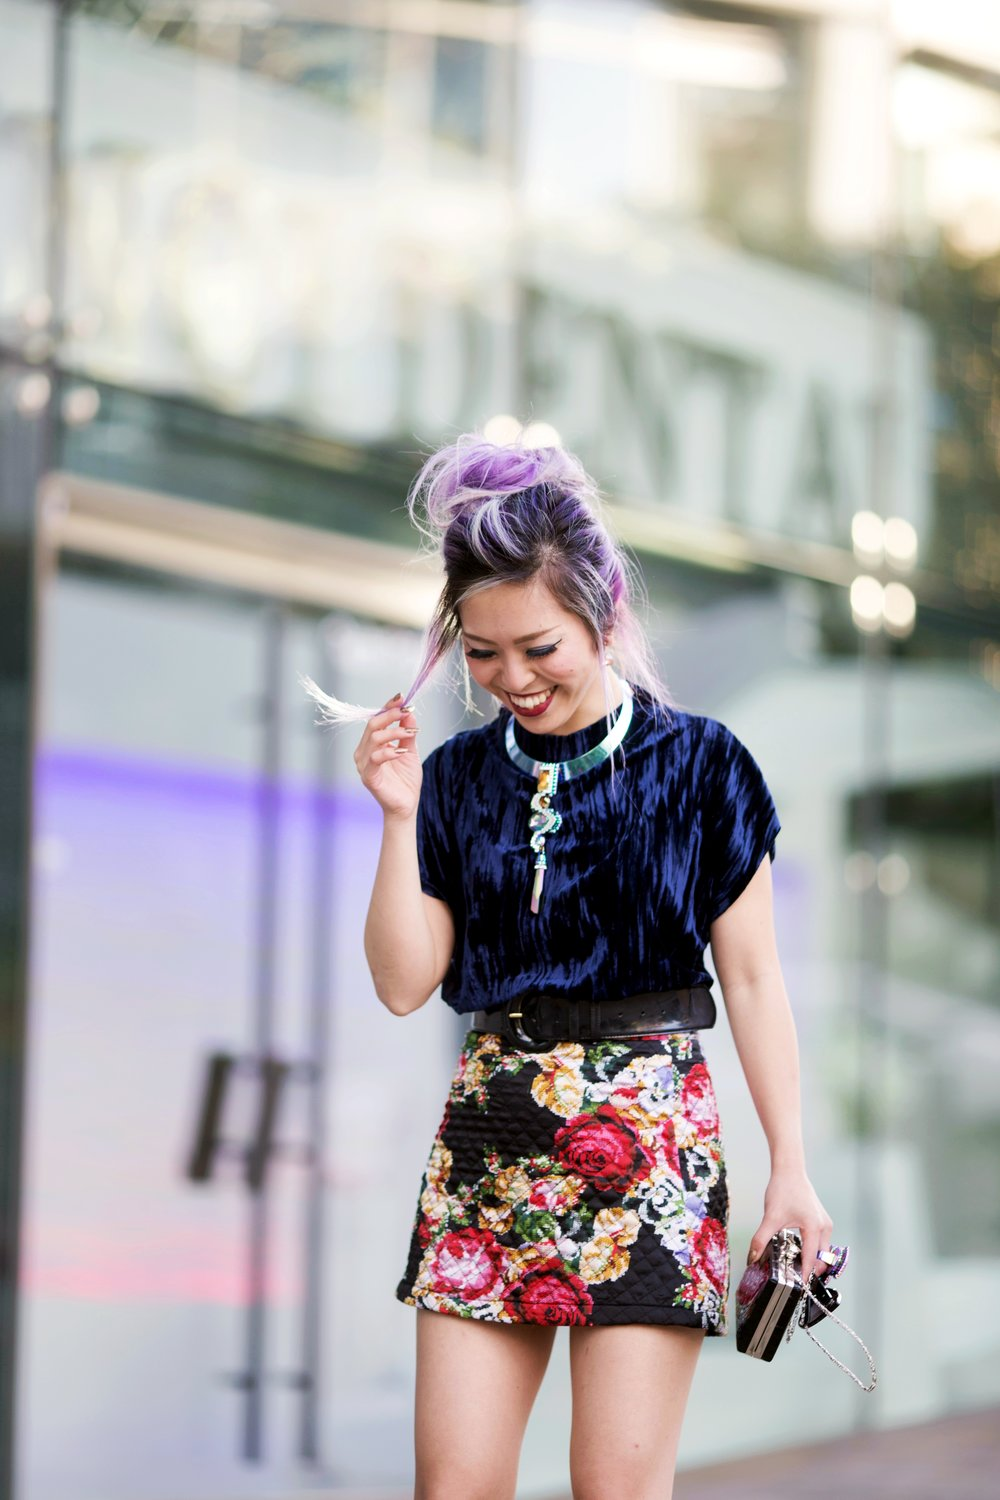 ZARA Blue Velvet Top_Forever 21 Floral Print Mini Skirt_Mango Patent Belt_Kate Spade Sheer Ankle Socks_Qupid Silver Pumps_Aldo Cateye Sunglasses_Swarovski Fluorescent Necklace & Fluorescent Ring_Aika's Love Closet_Seattle Fashion Blogger_Japanese_Lavender Hair_Mermaid Hair 11